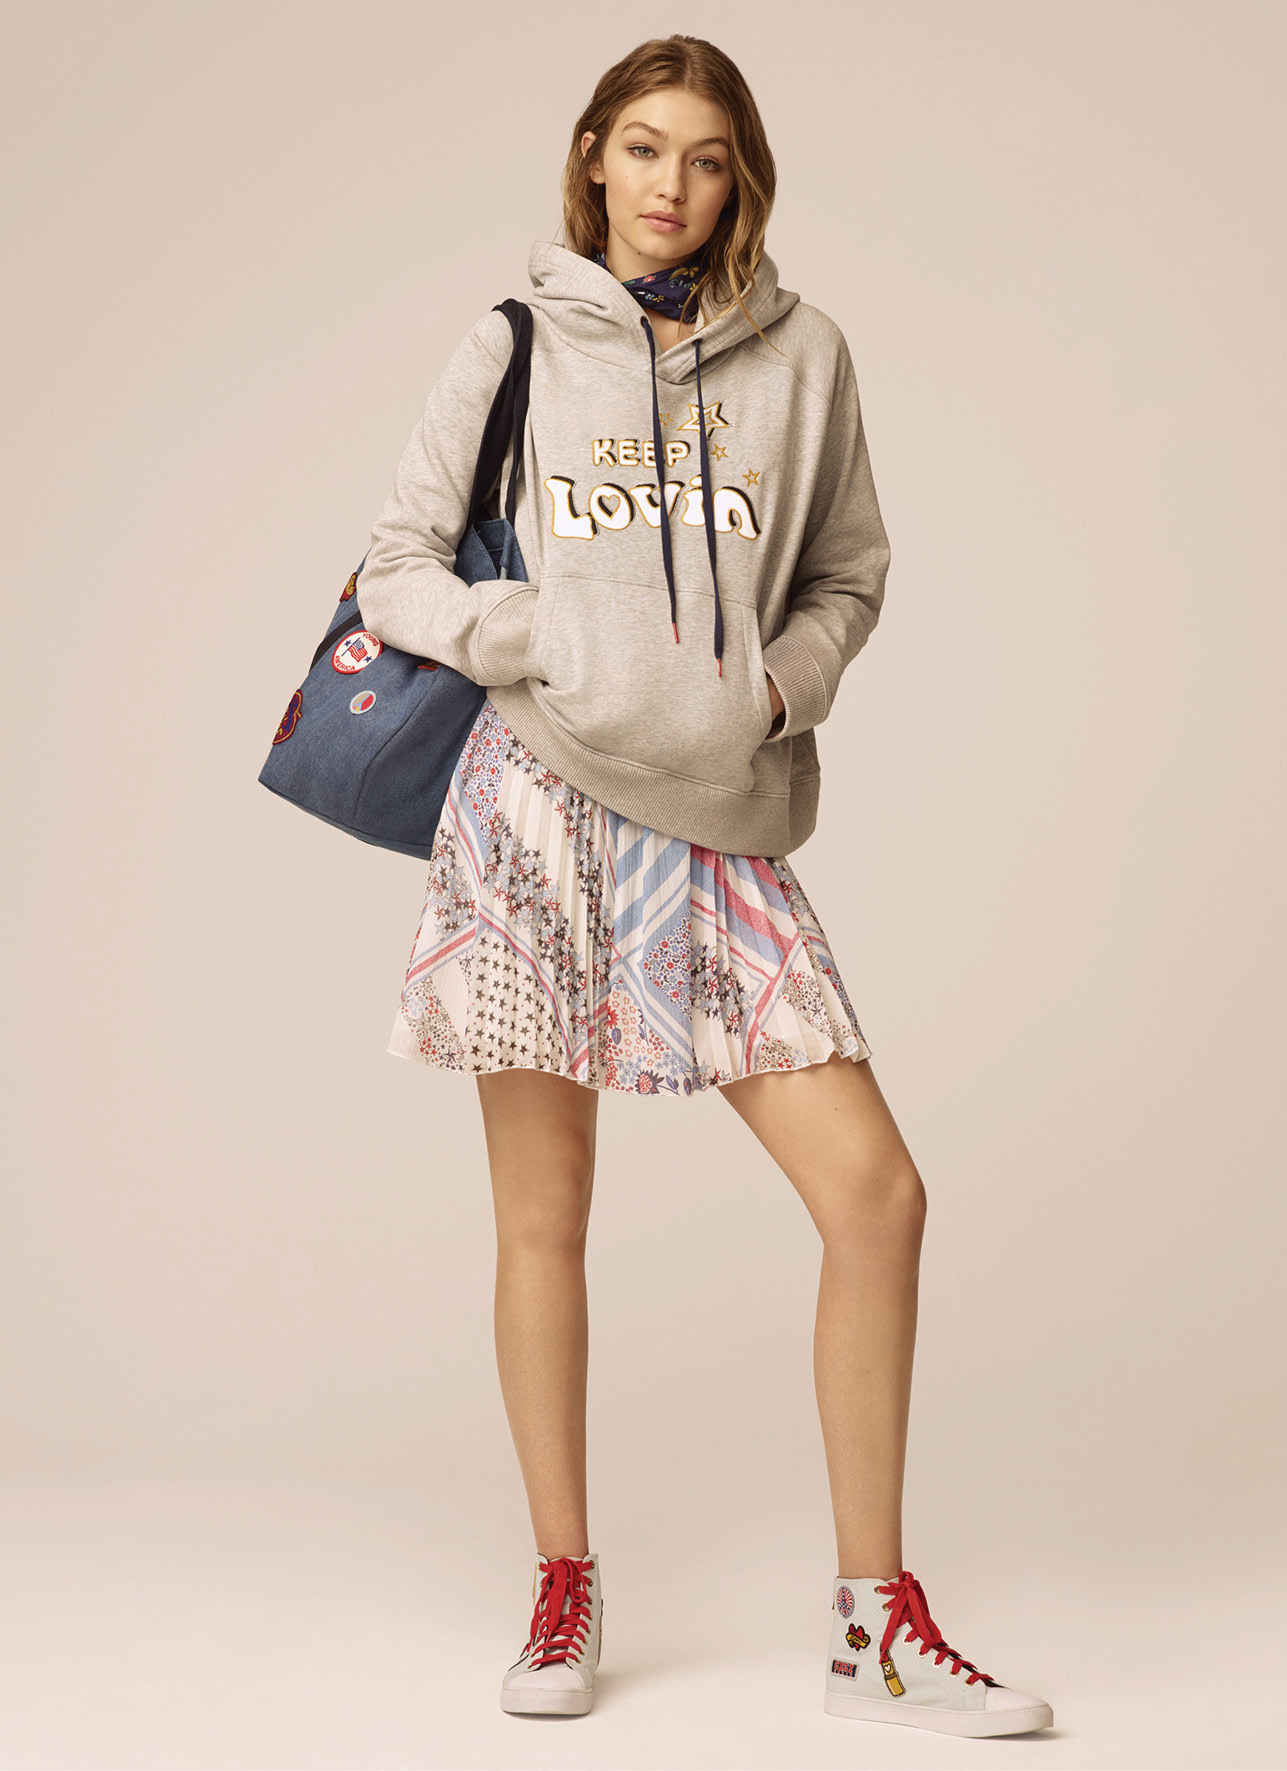 87275b1a4 Every Look From Tommy Hilfiger x Gigi Hadid Spring 2017 Collection ...